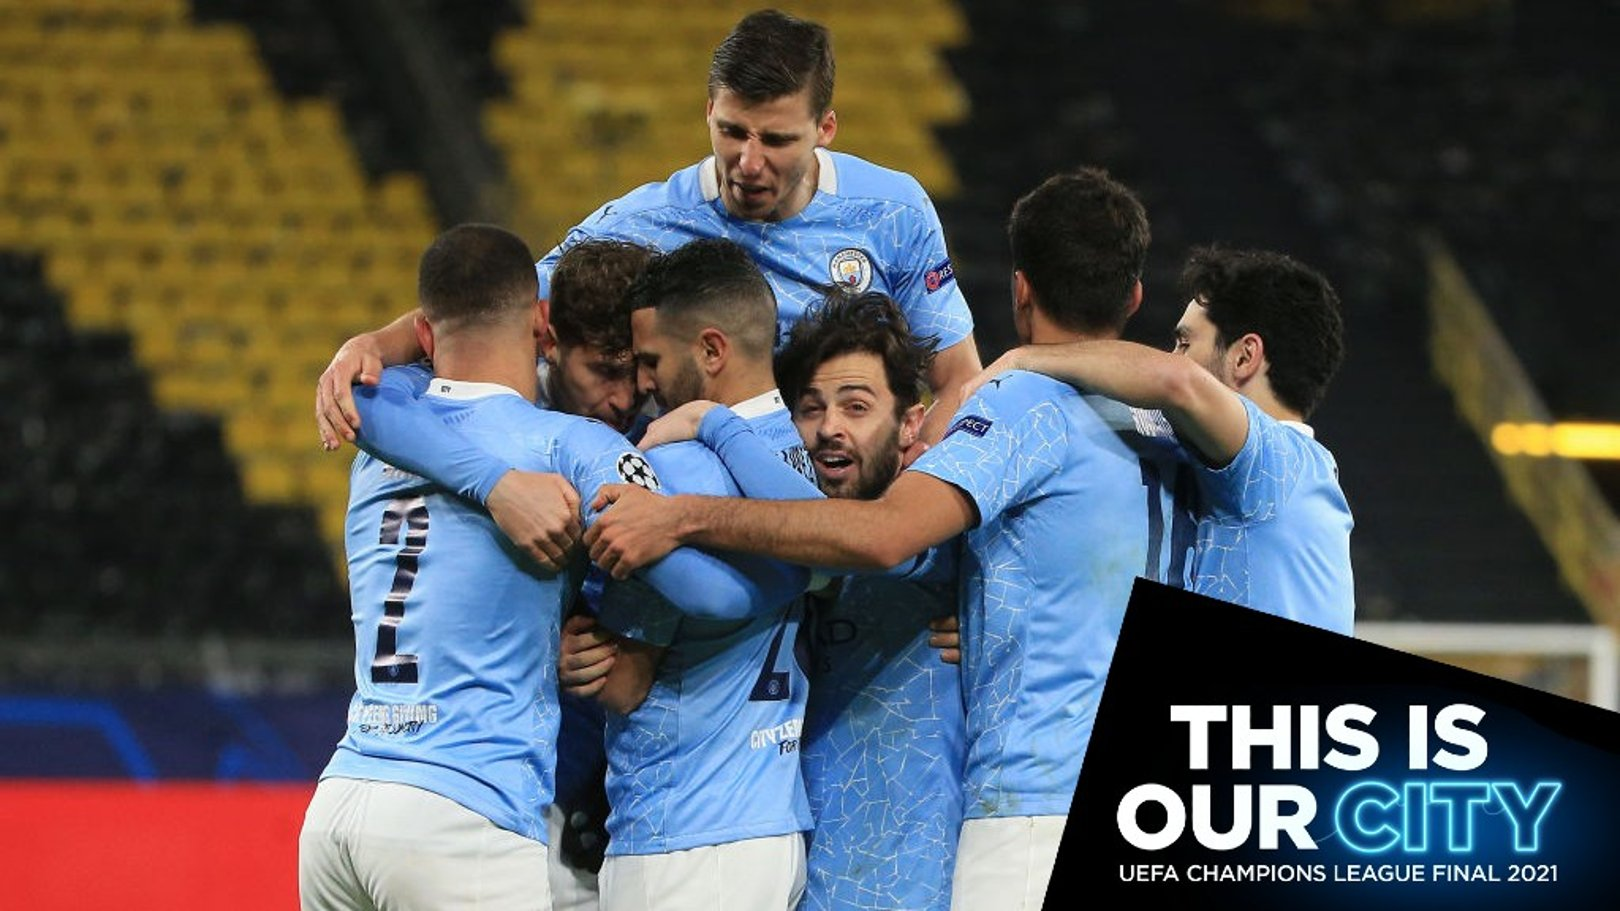 Henry Winter: There is a hunger about City and they so want this...